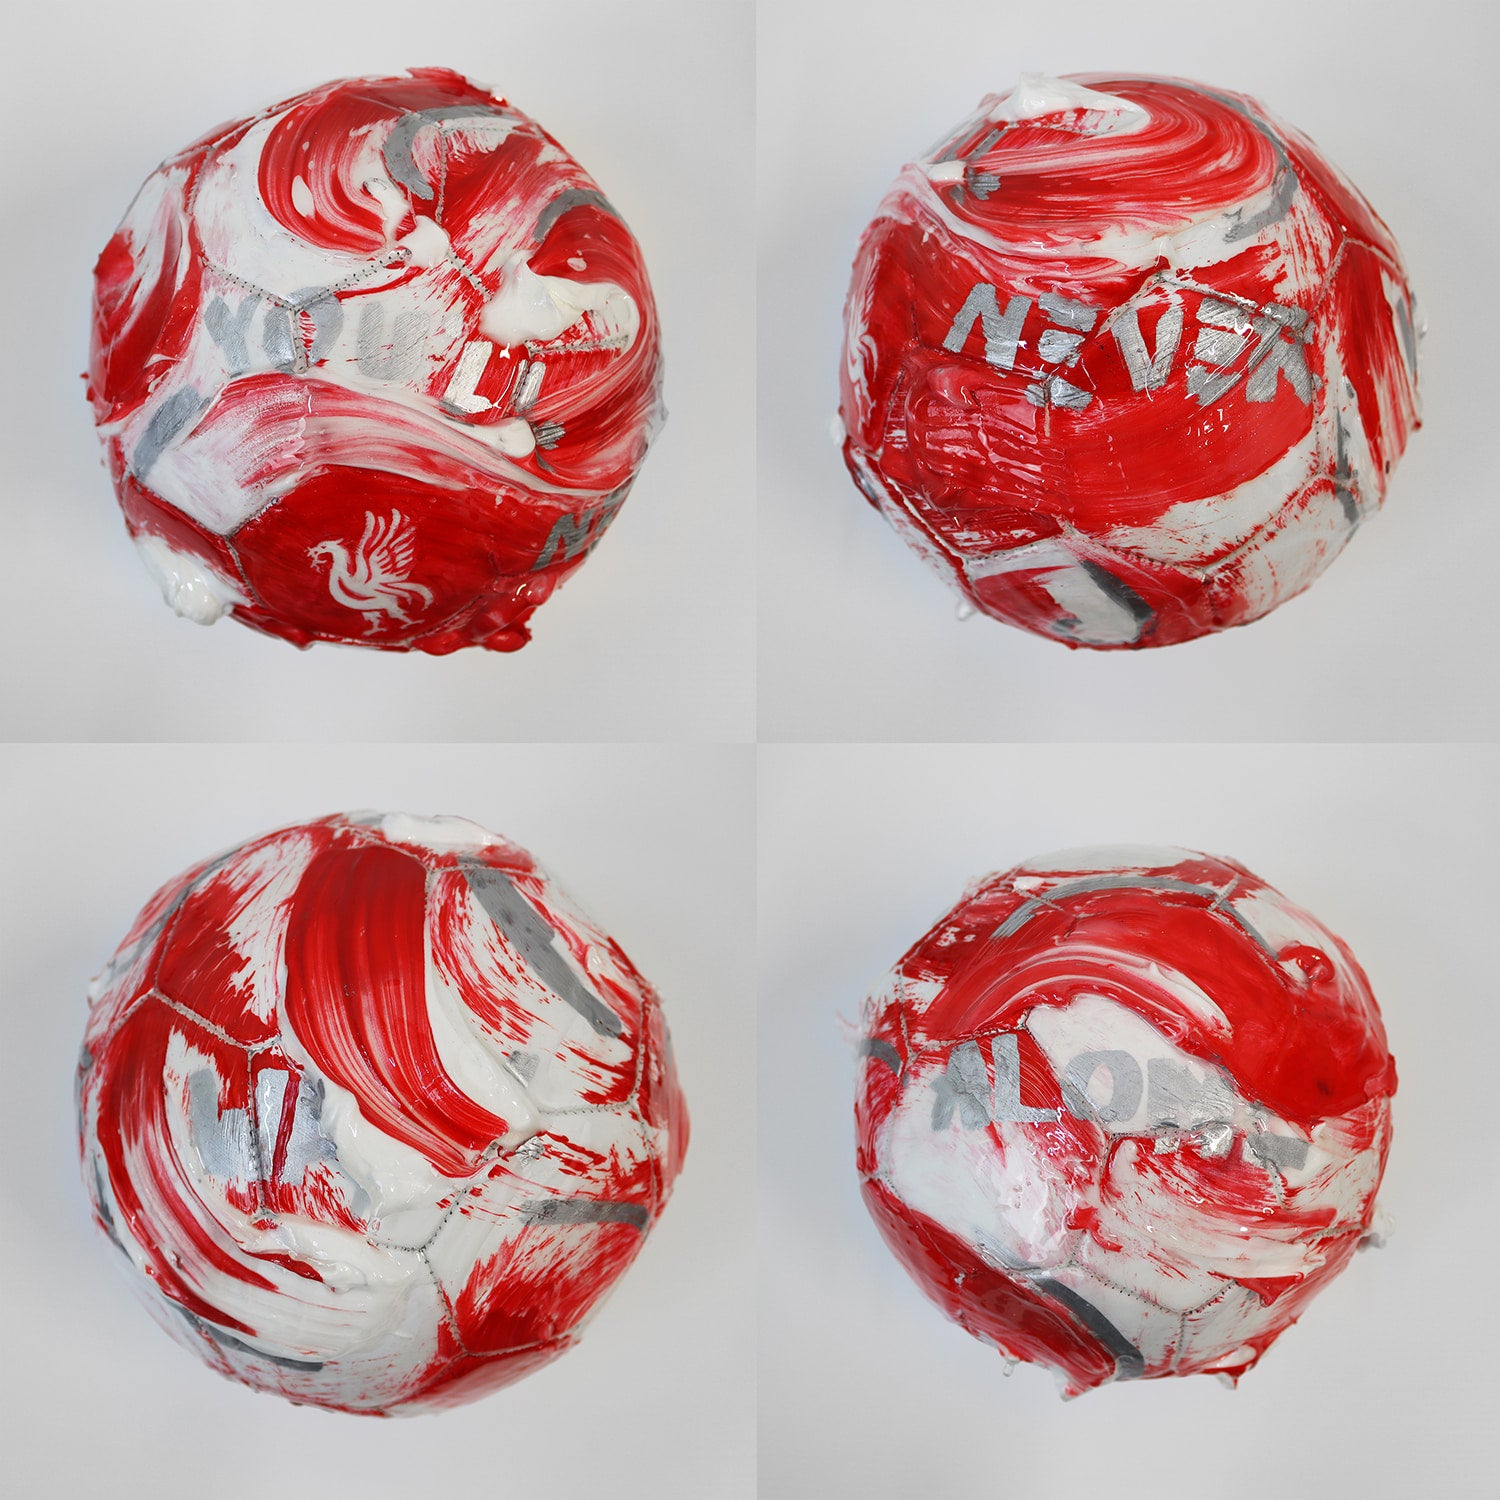 Custom painted Liverpool FC football by UK sports artist David Roman. You'll never walk alone